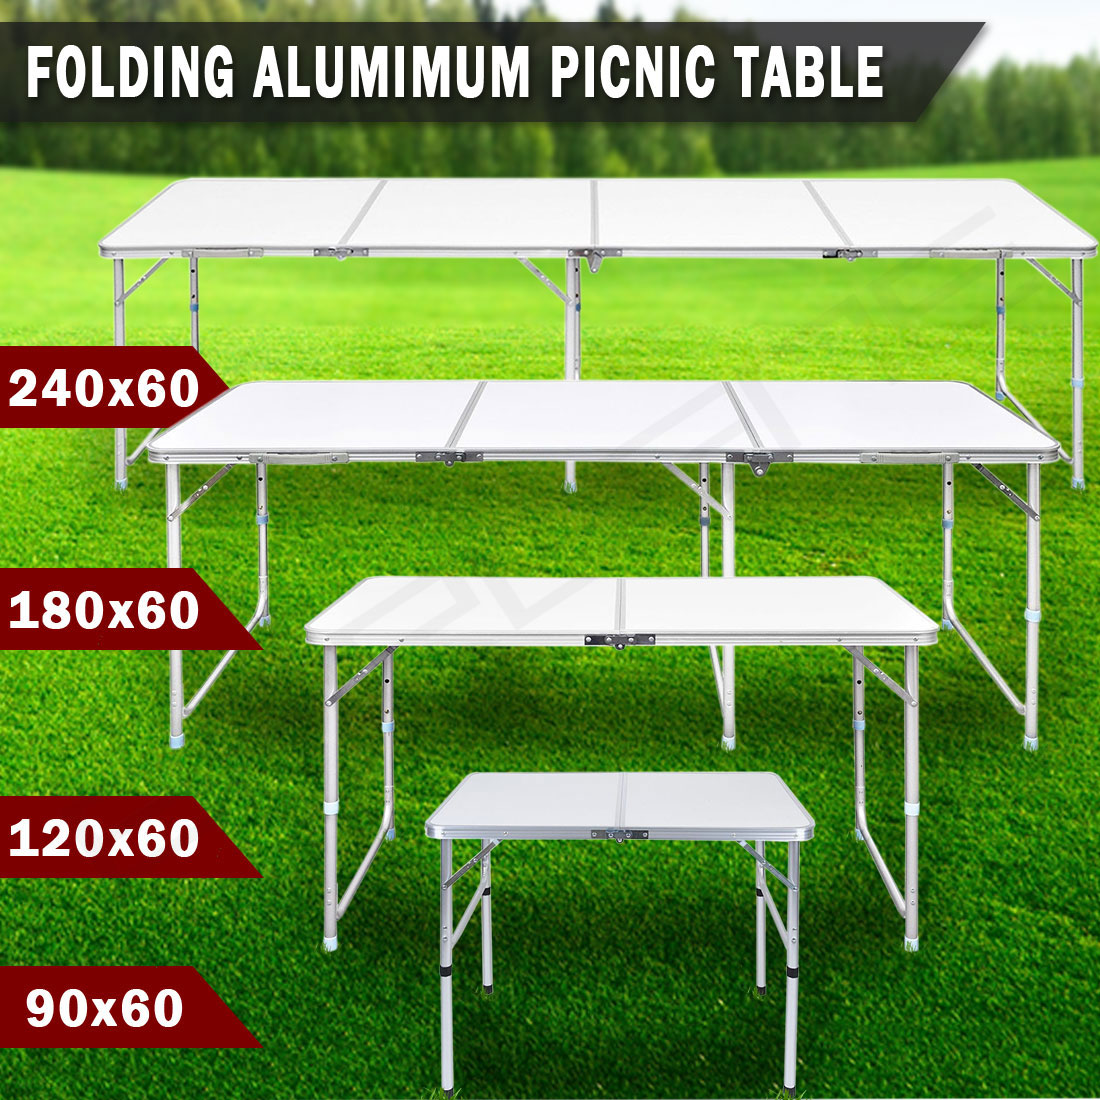 Details about folding camping table portable picnic outdoor garden bbq aluminum dining desk